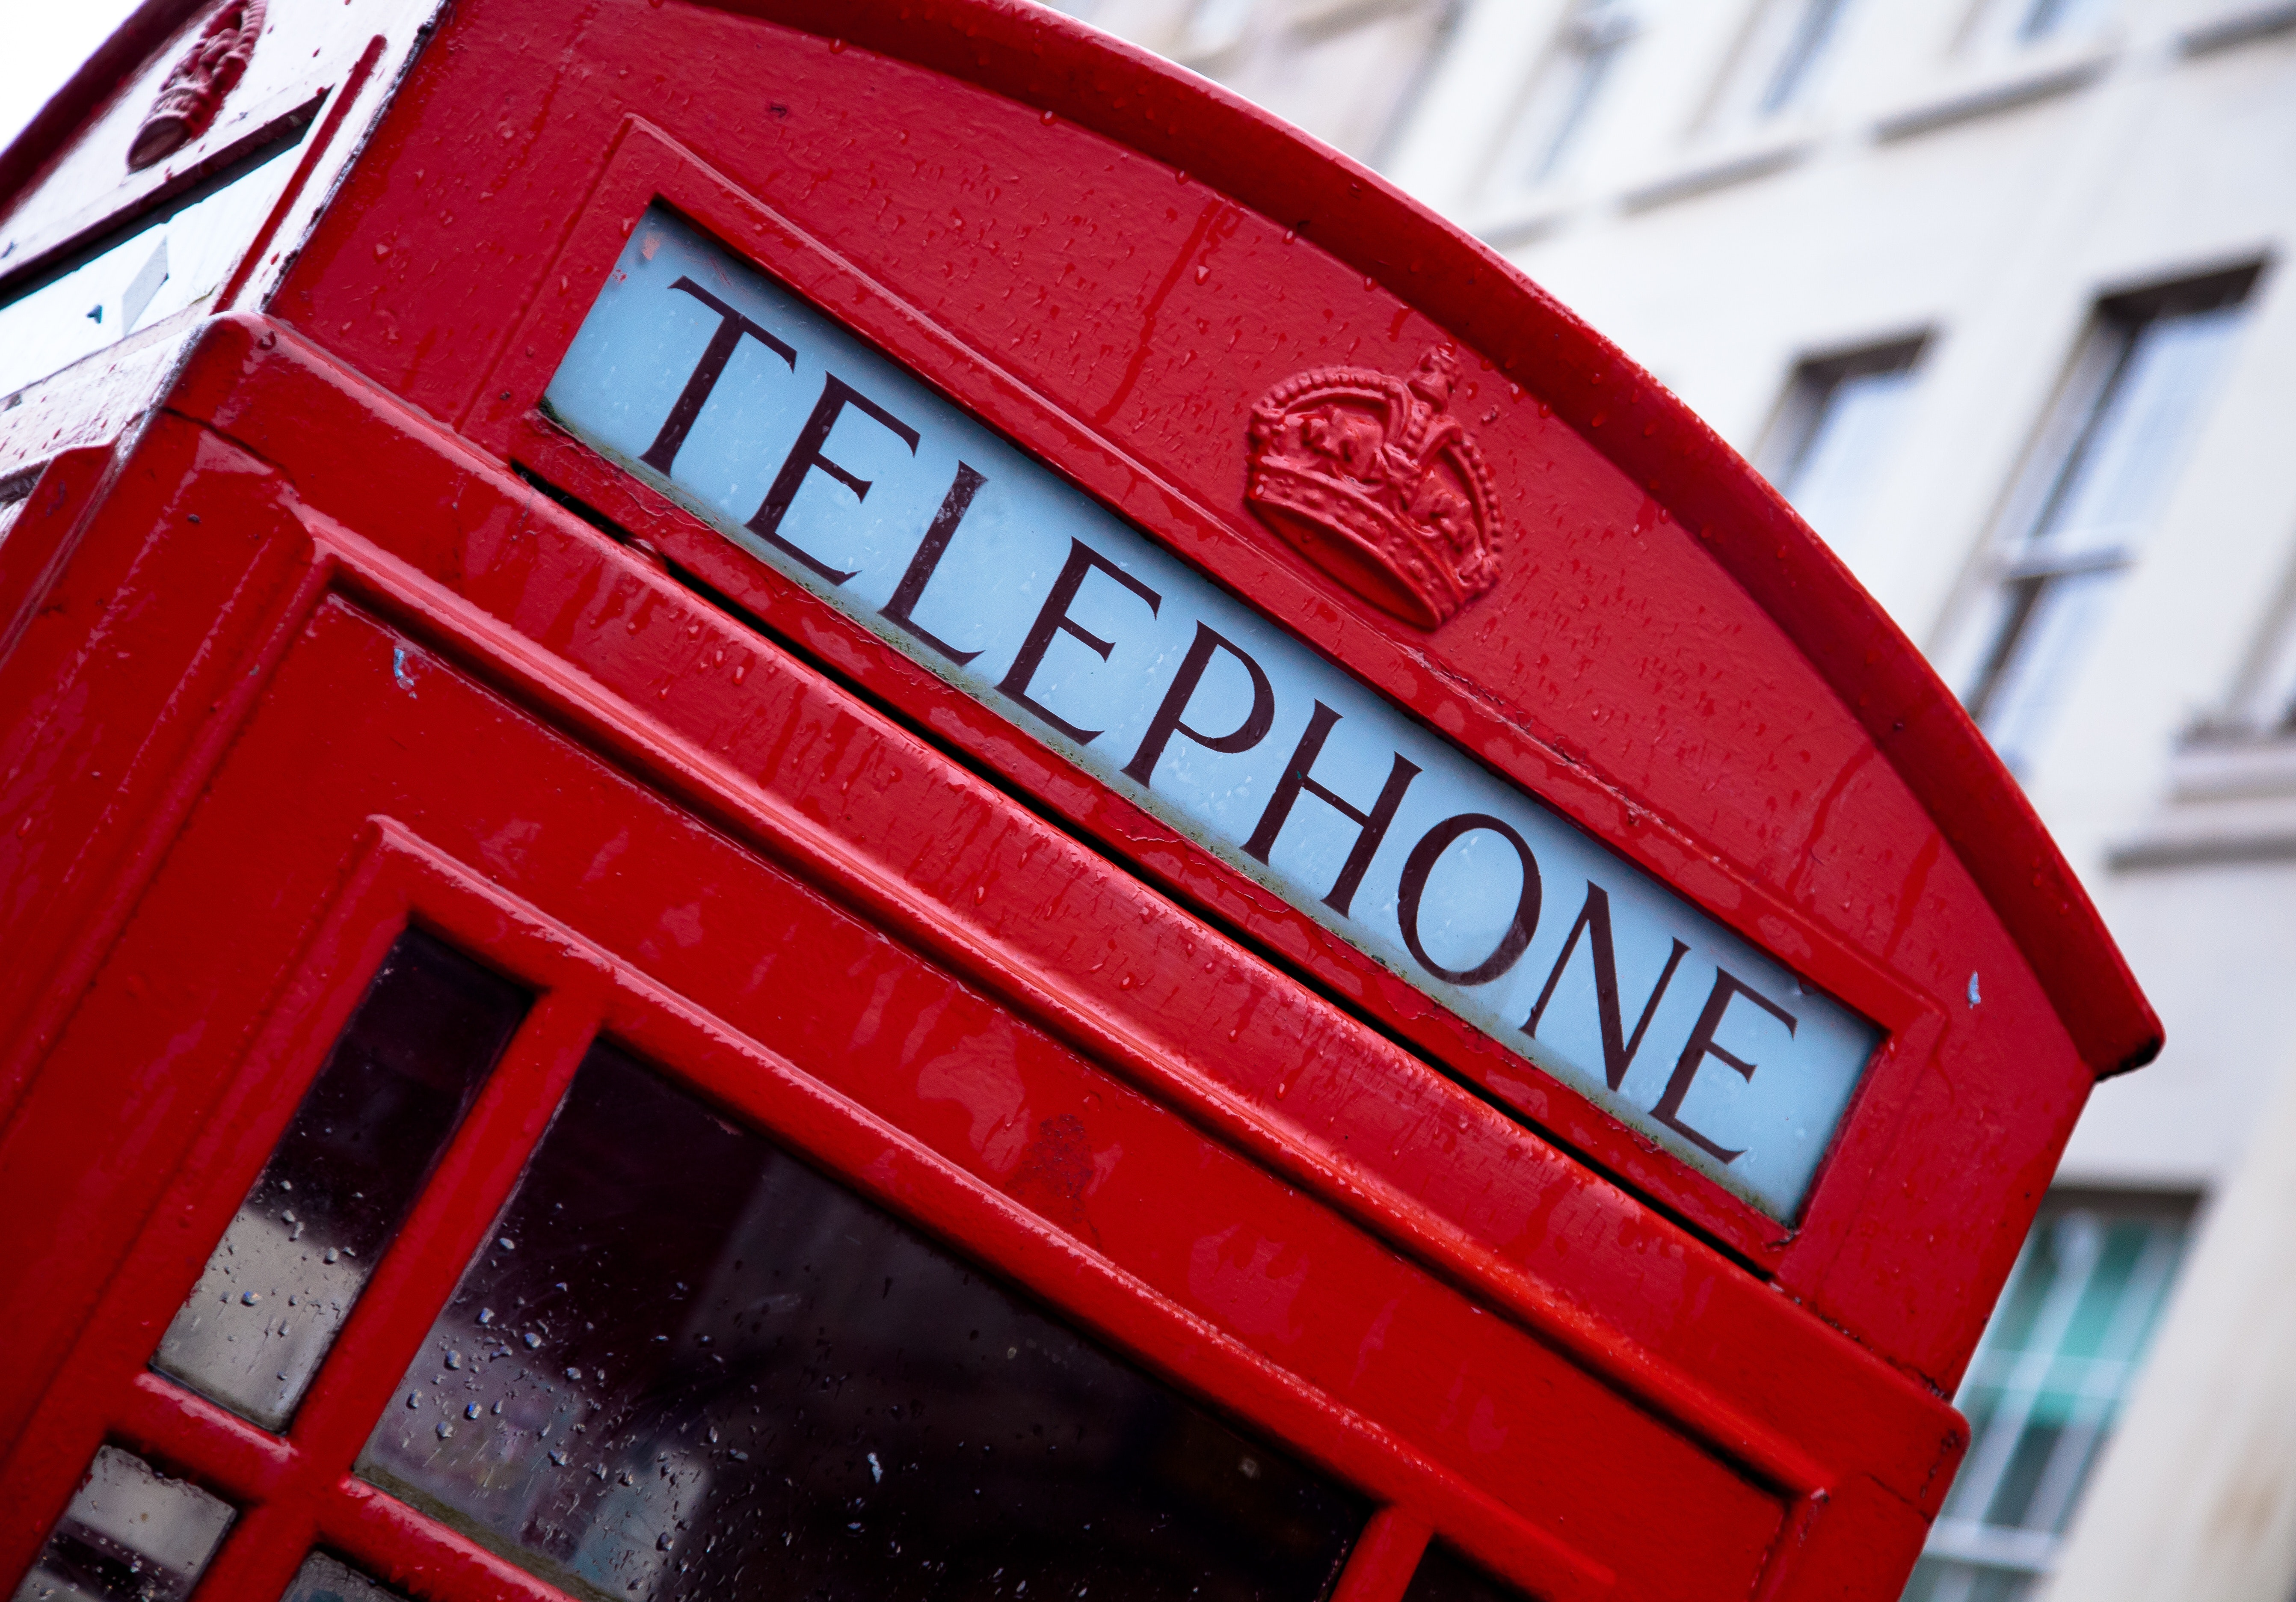 Red and White Telephone Booth, Outdoors, Vintage, Time, Telephone booth, HQ Photo